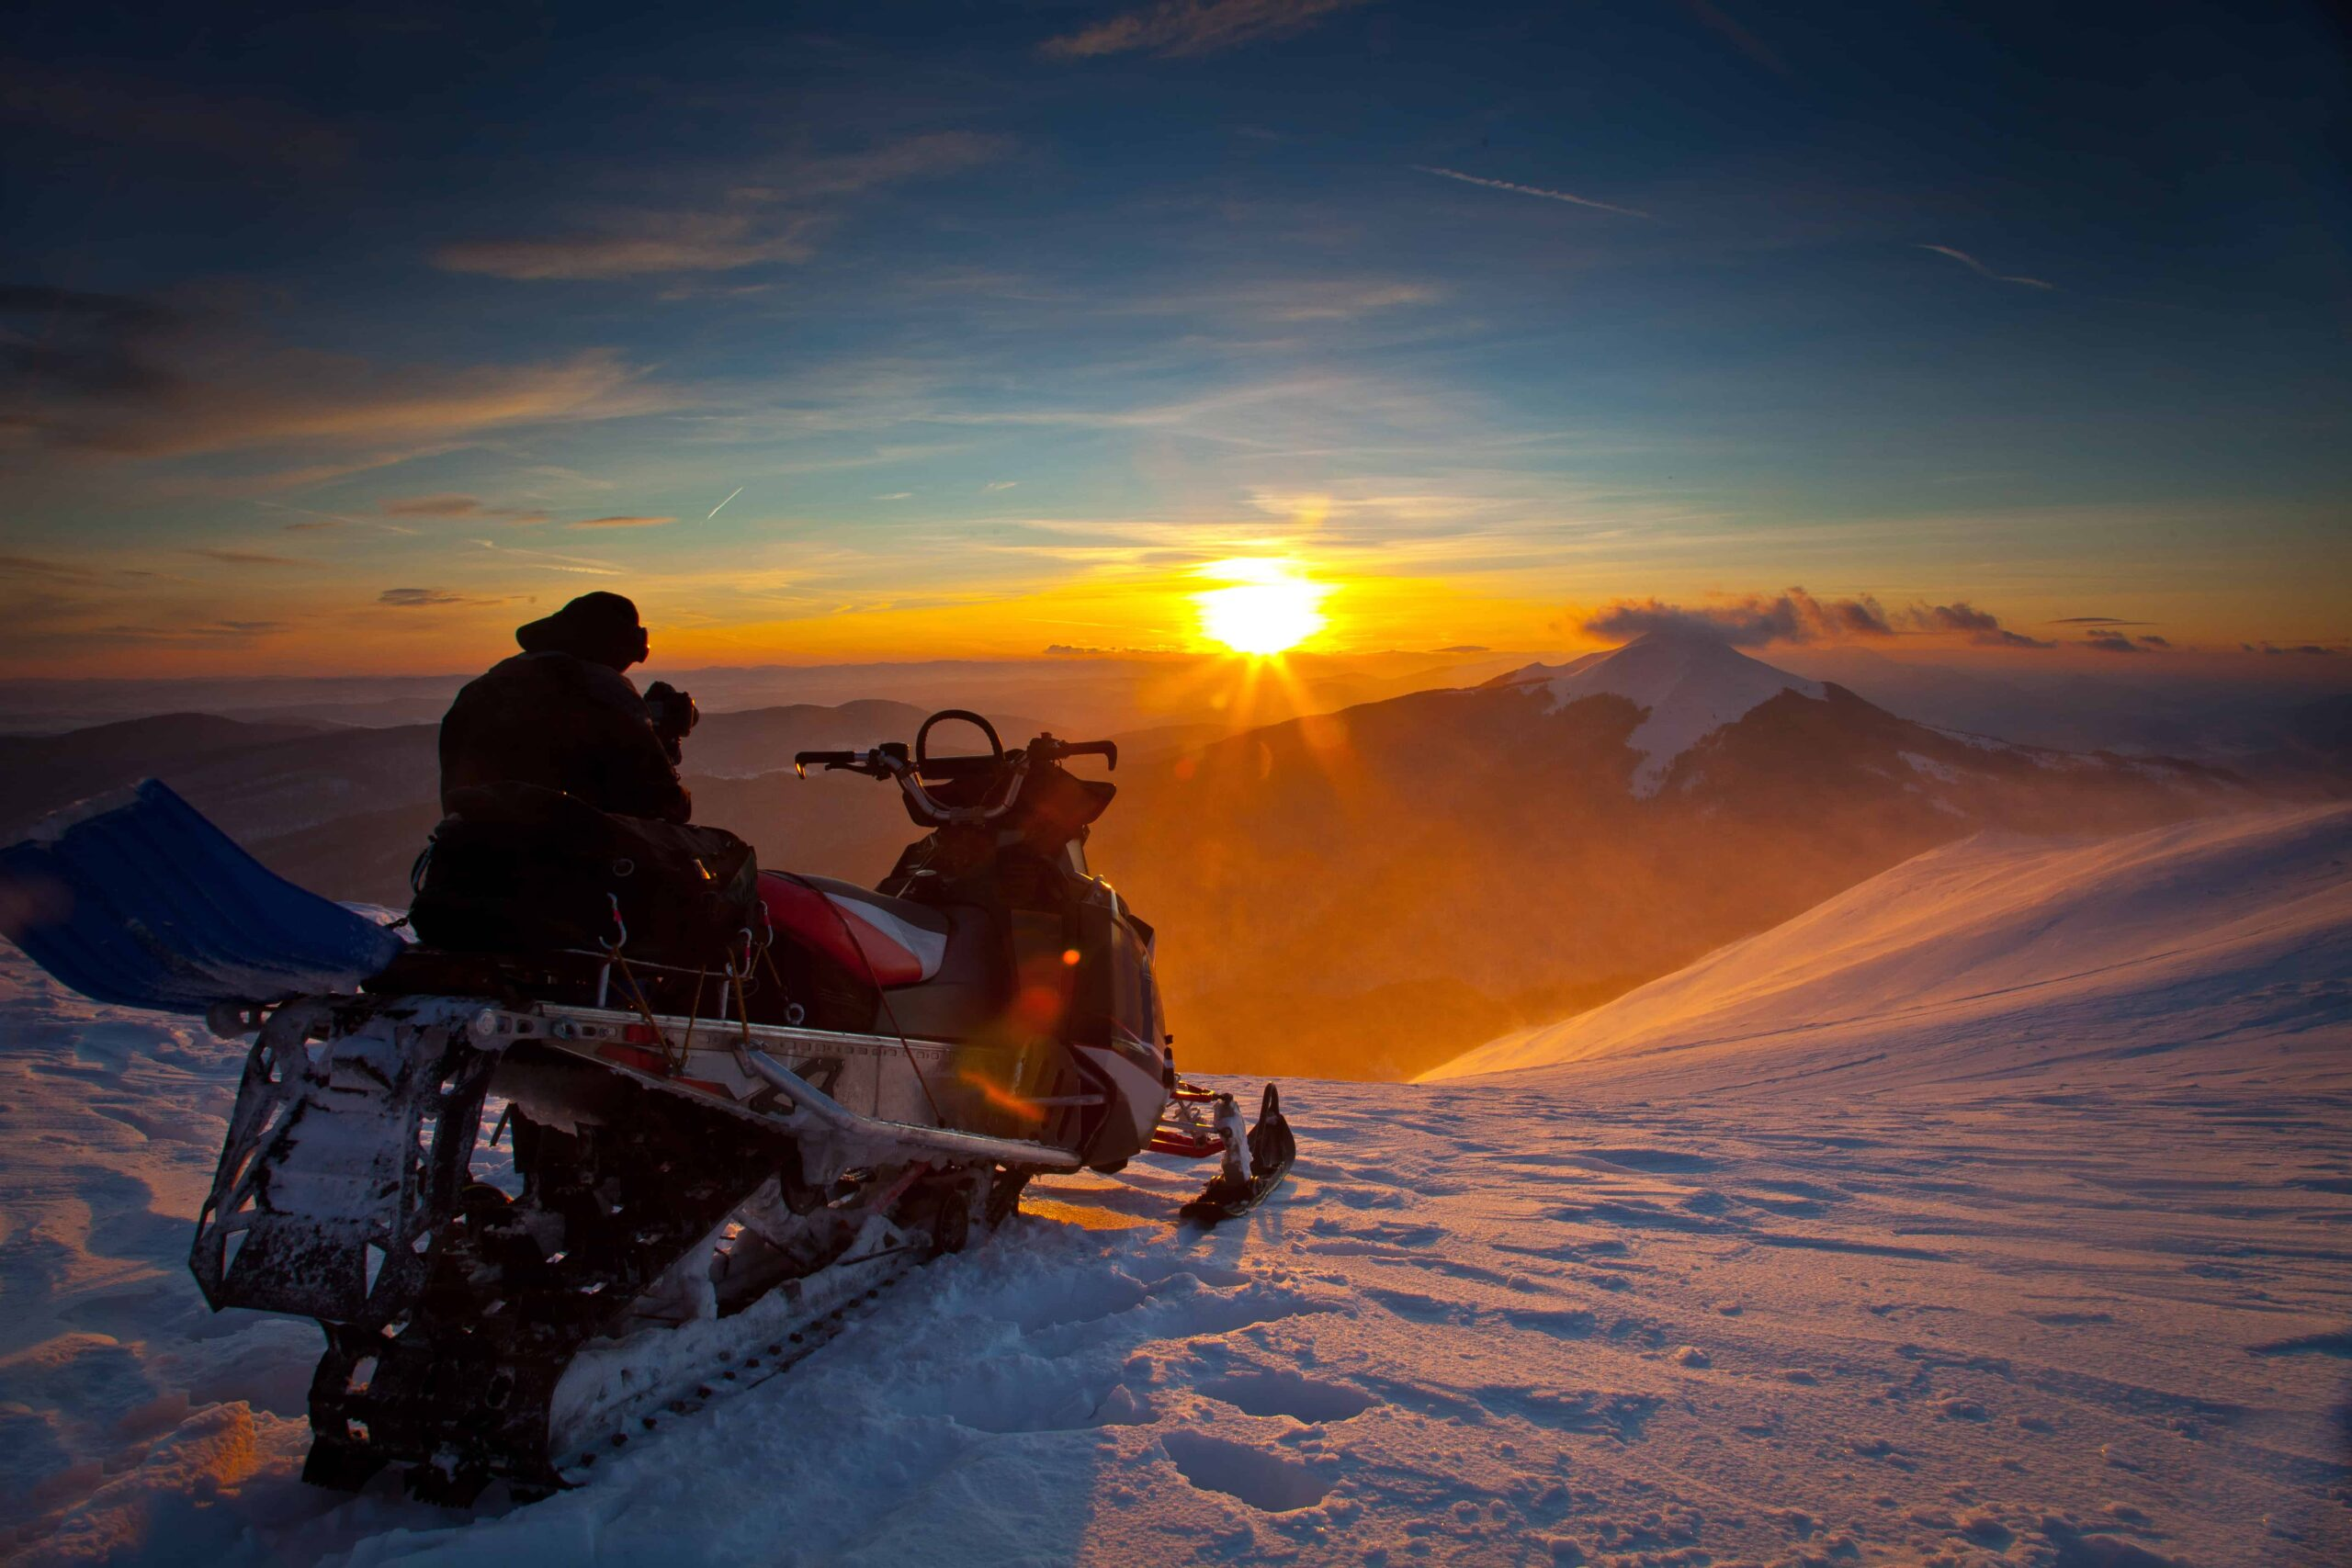 sunset and snowmobiling on a glacier in Iceland